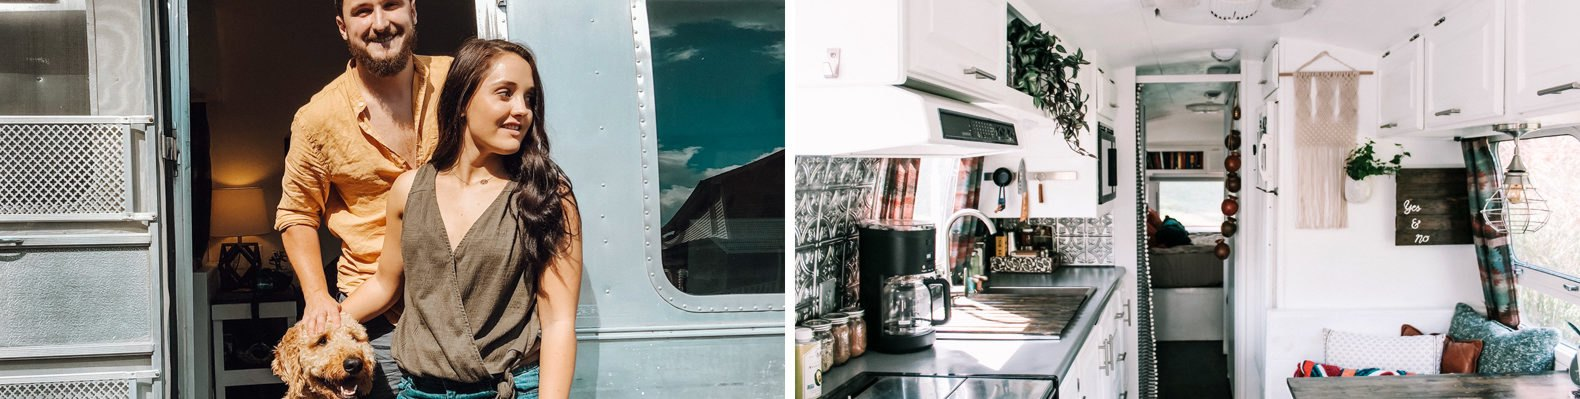 On the left, man, woman and dog standing outside an airstream. On the right, bright Airstream interior with white walls and a small kitchen and dining space.